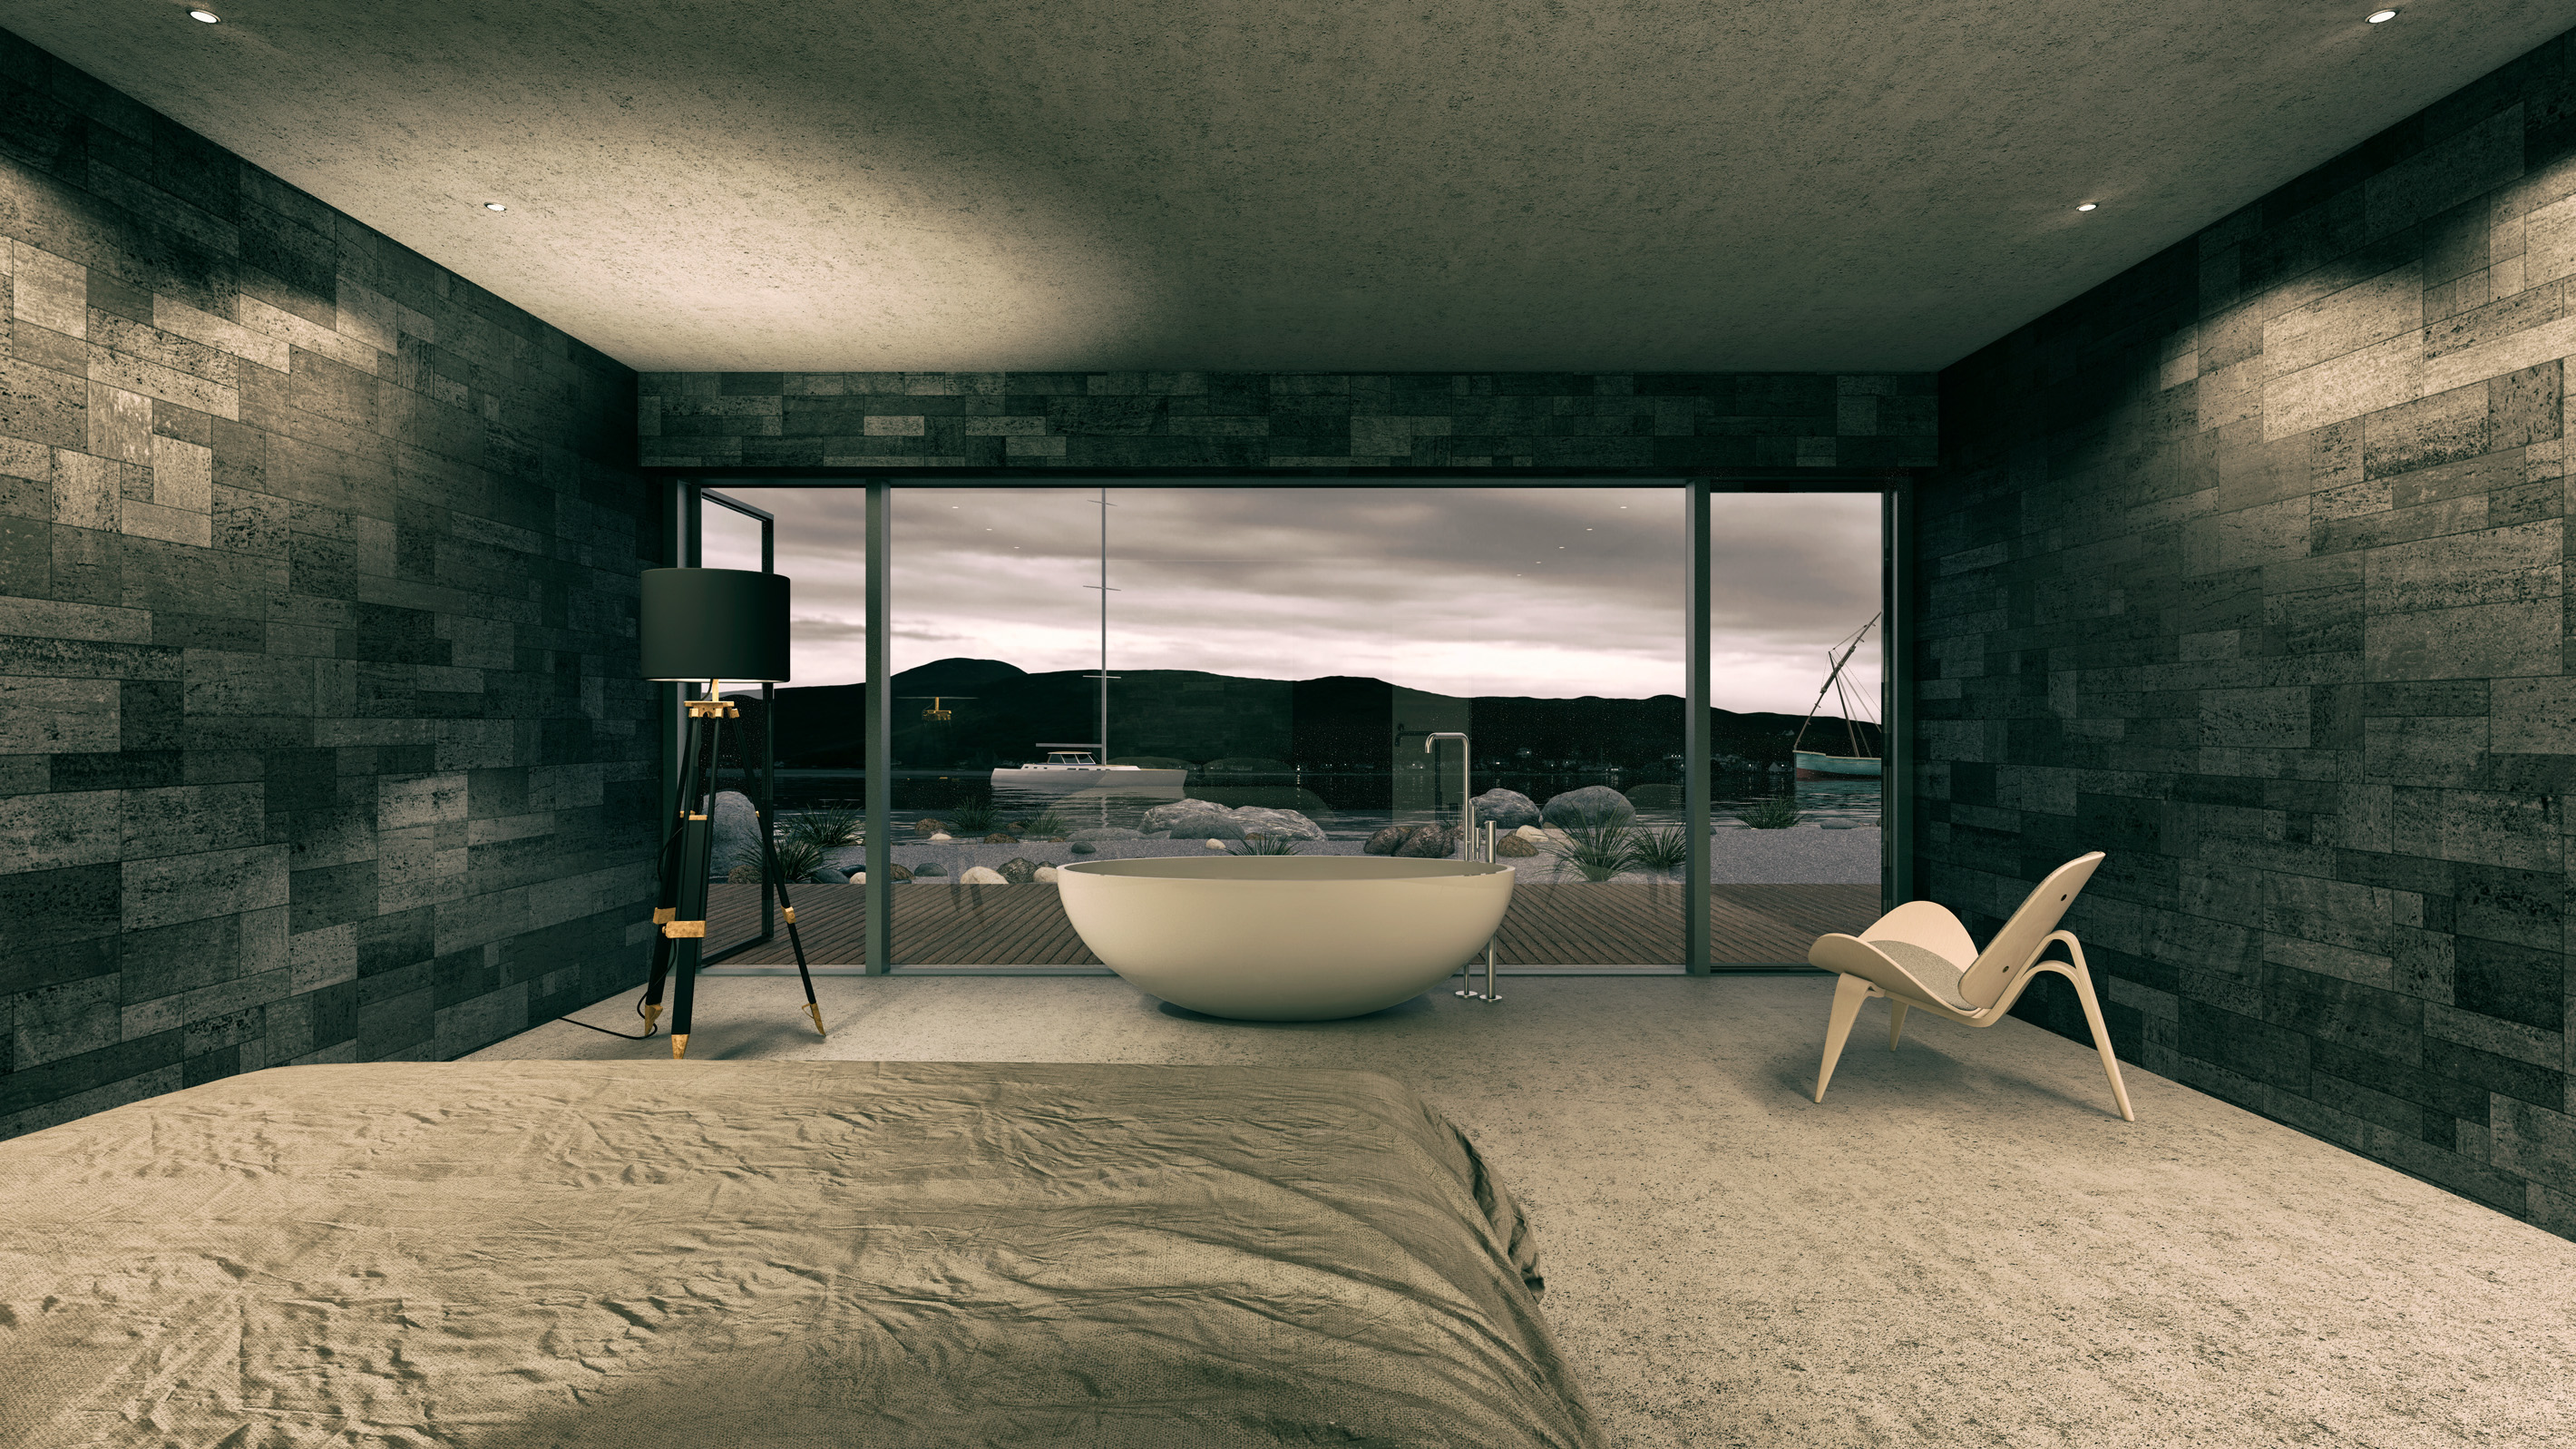 Architectural Visualization for a Hotel in Lochranza. Scottland.